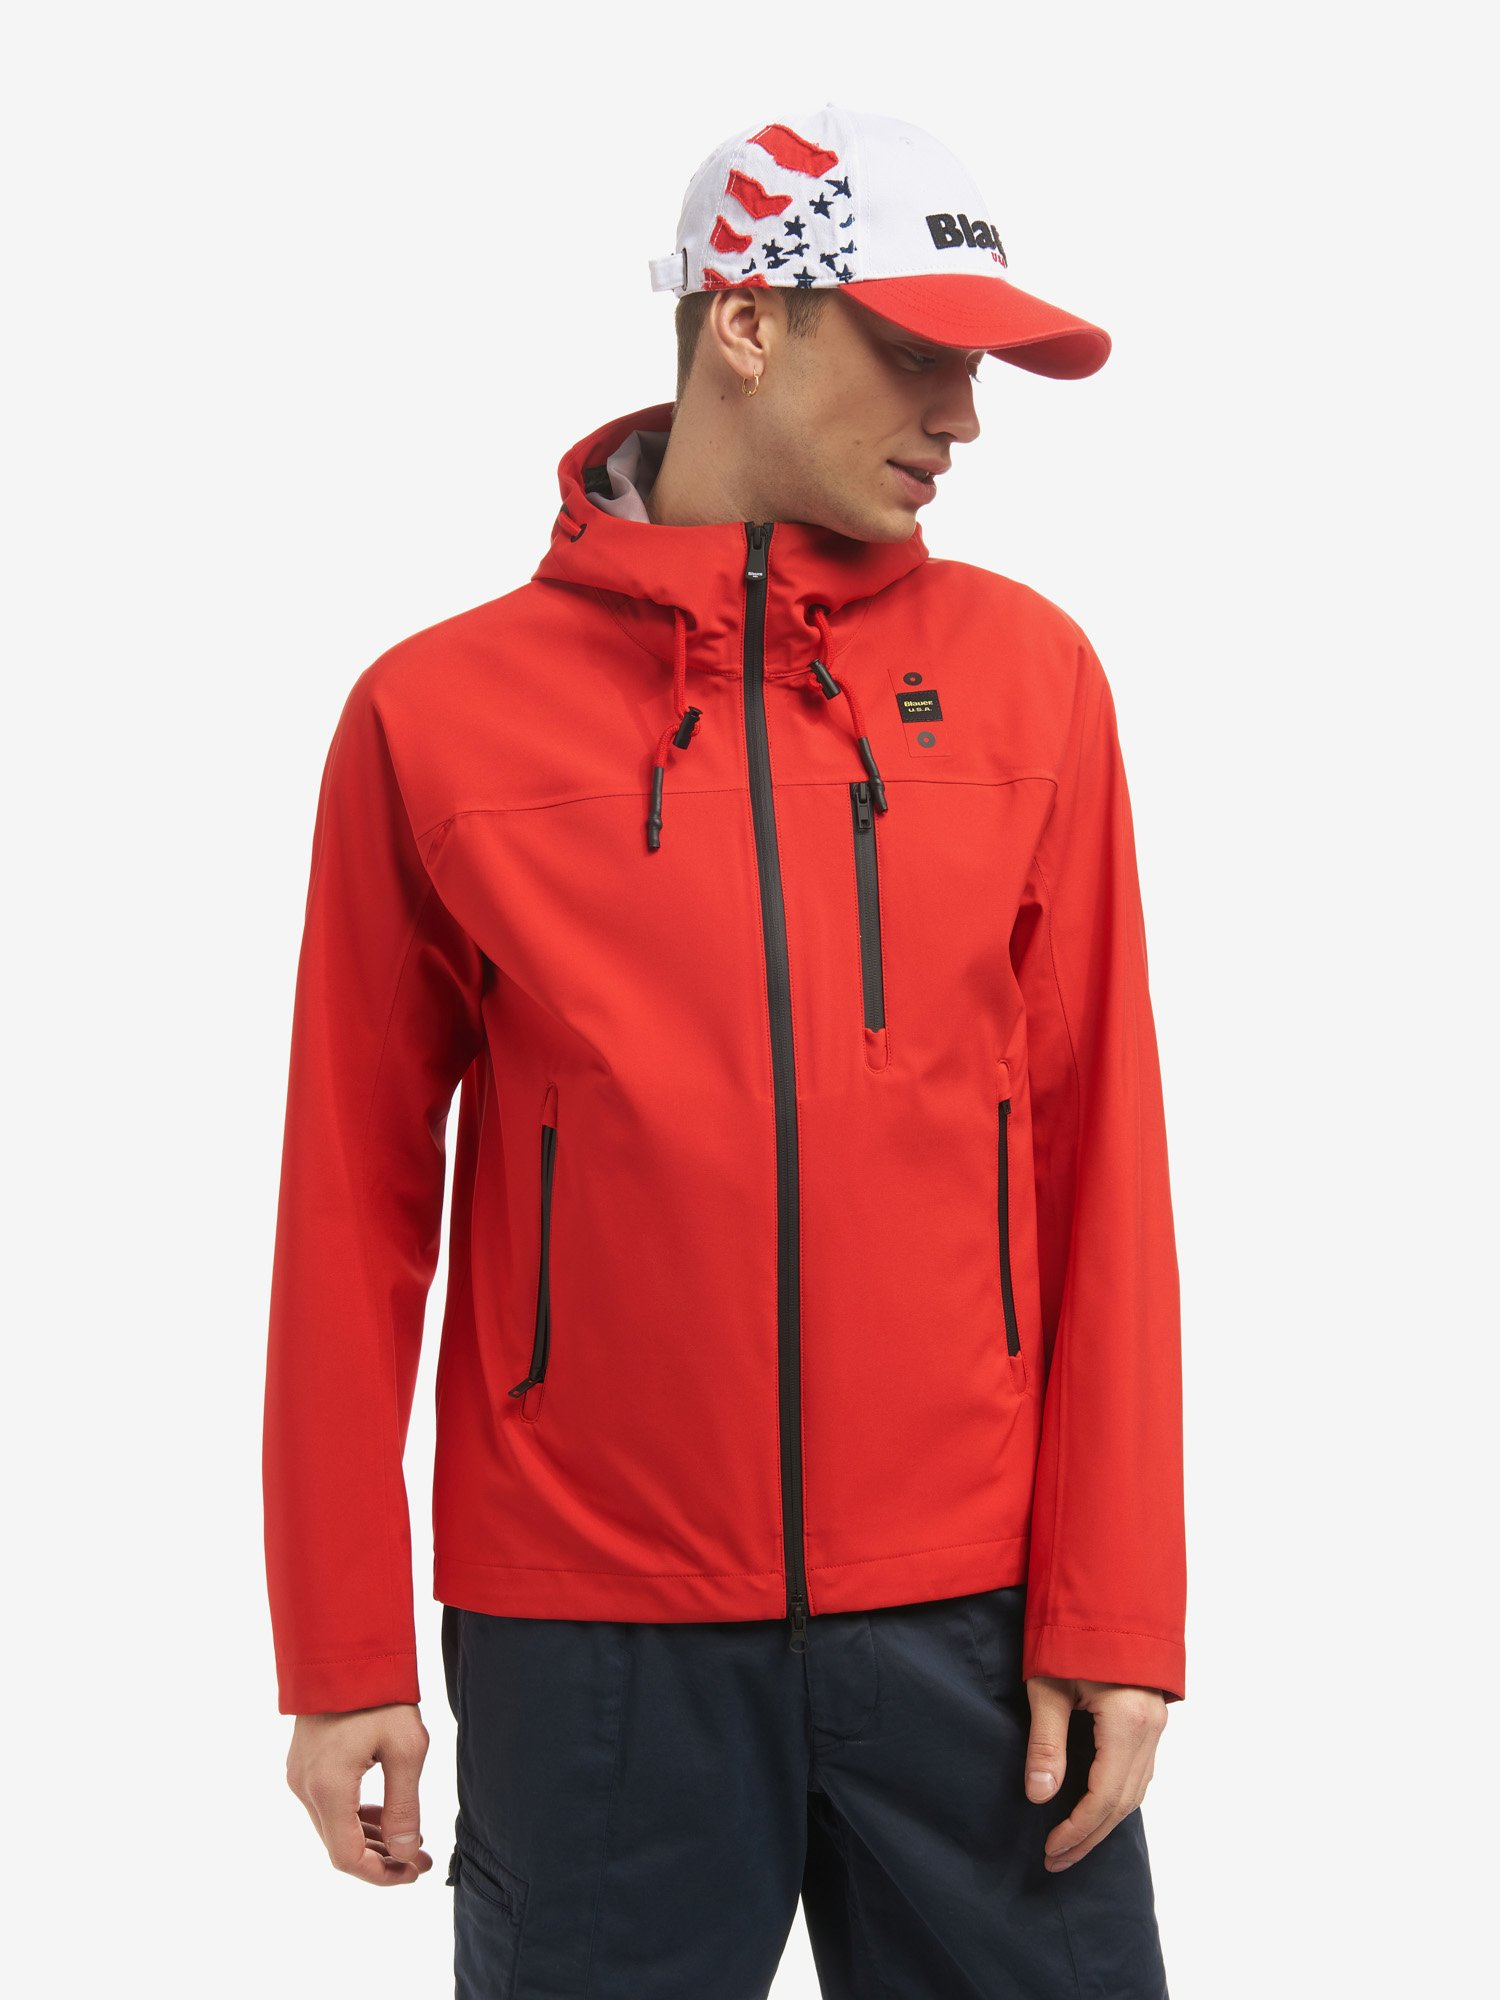 Blauer - STRETCH-KAPUZENJACKE AUS NEOPREN DON - Bright Red - Blauer